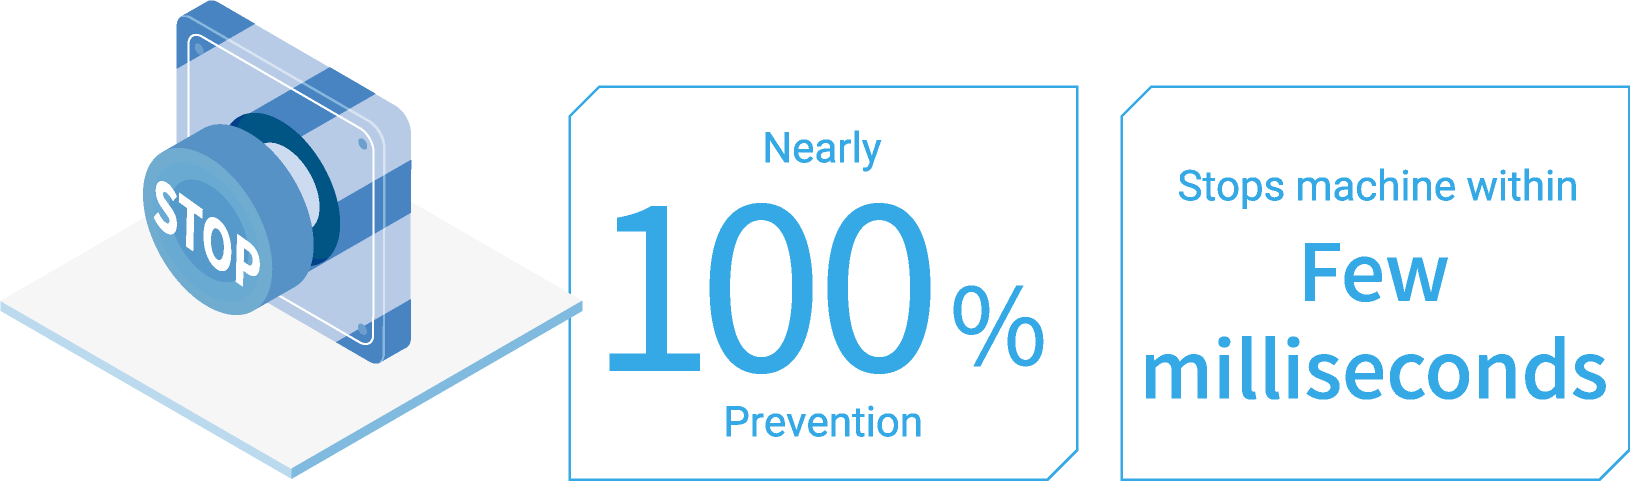 Nearly 100% Prevention